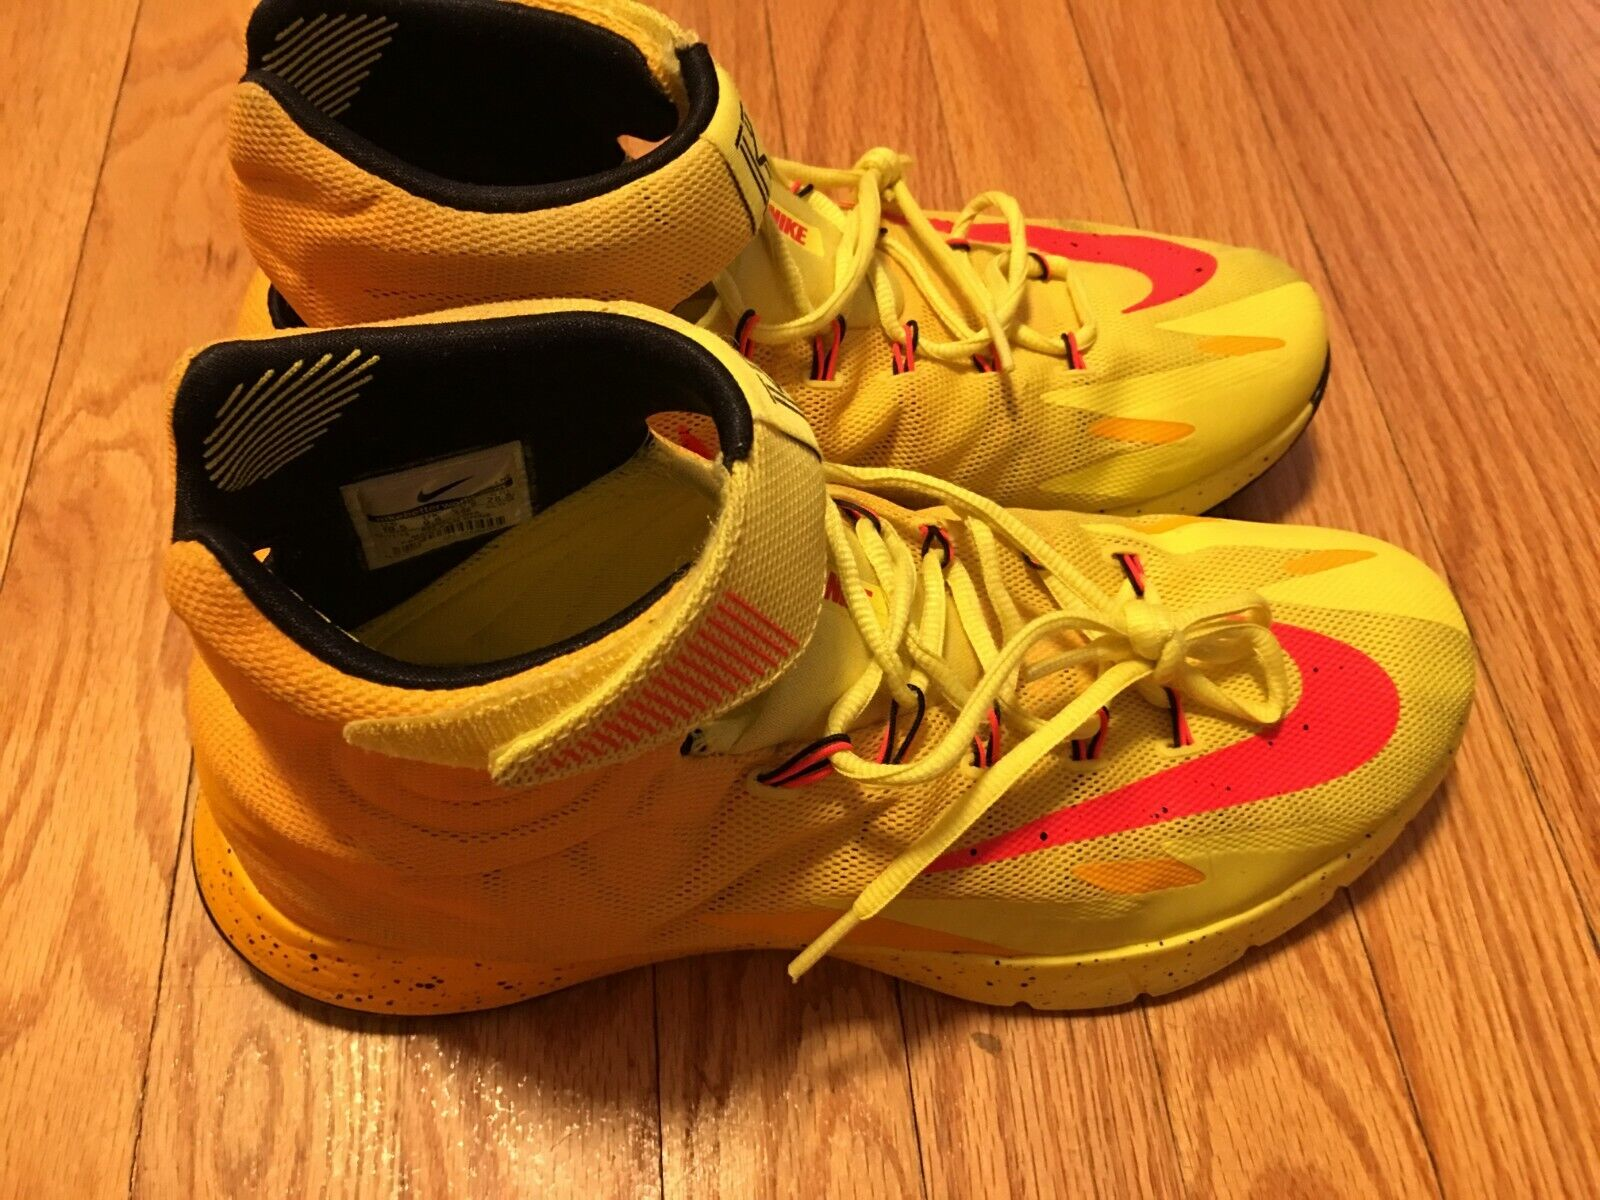 Nike hyperrev OG 2014 Kyrie Irving PE Yellow Red gold USED slightly dirty